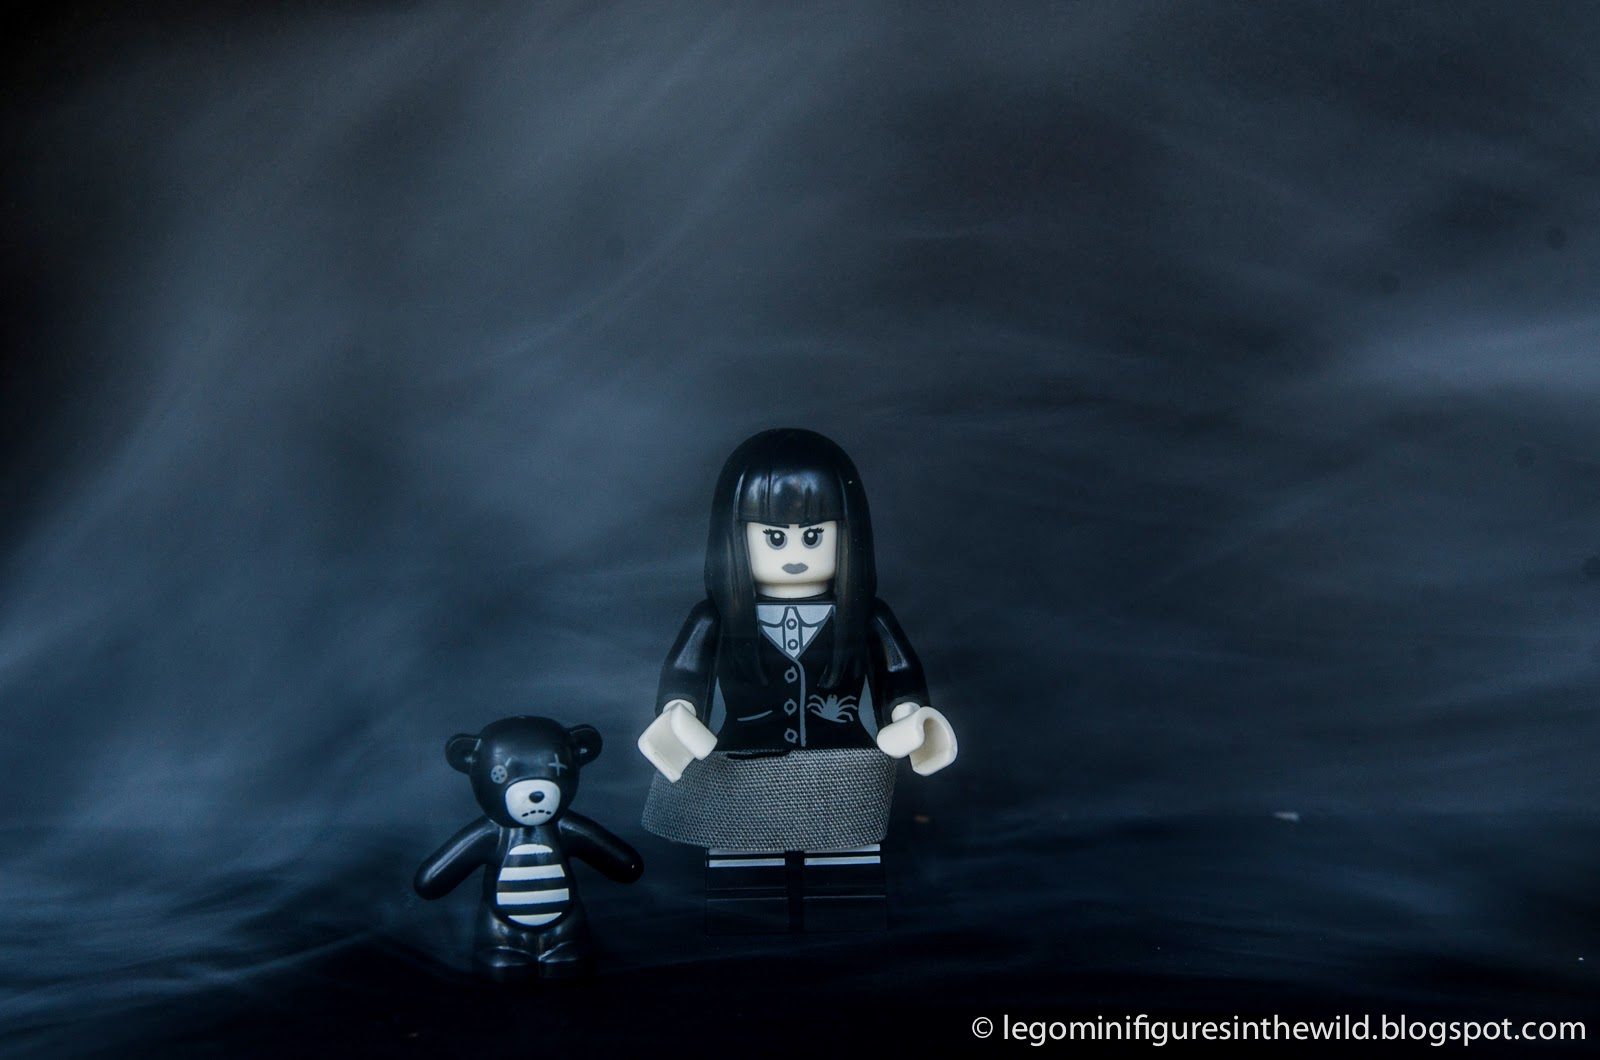 Lego Minifigure Series 12 Spooky Girl: